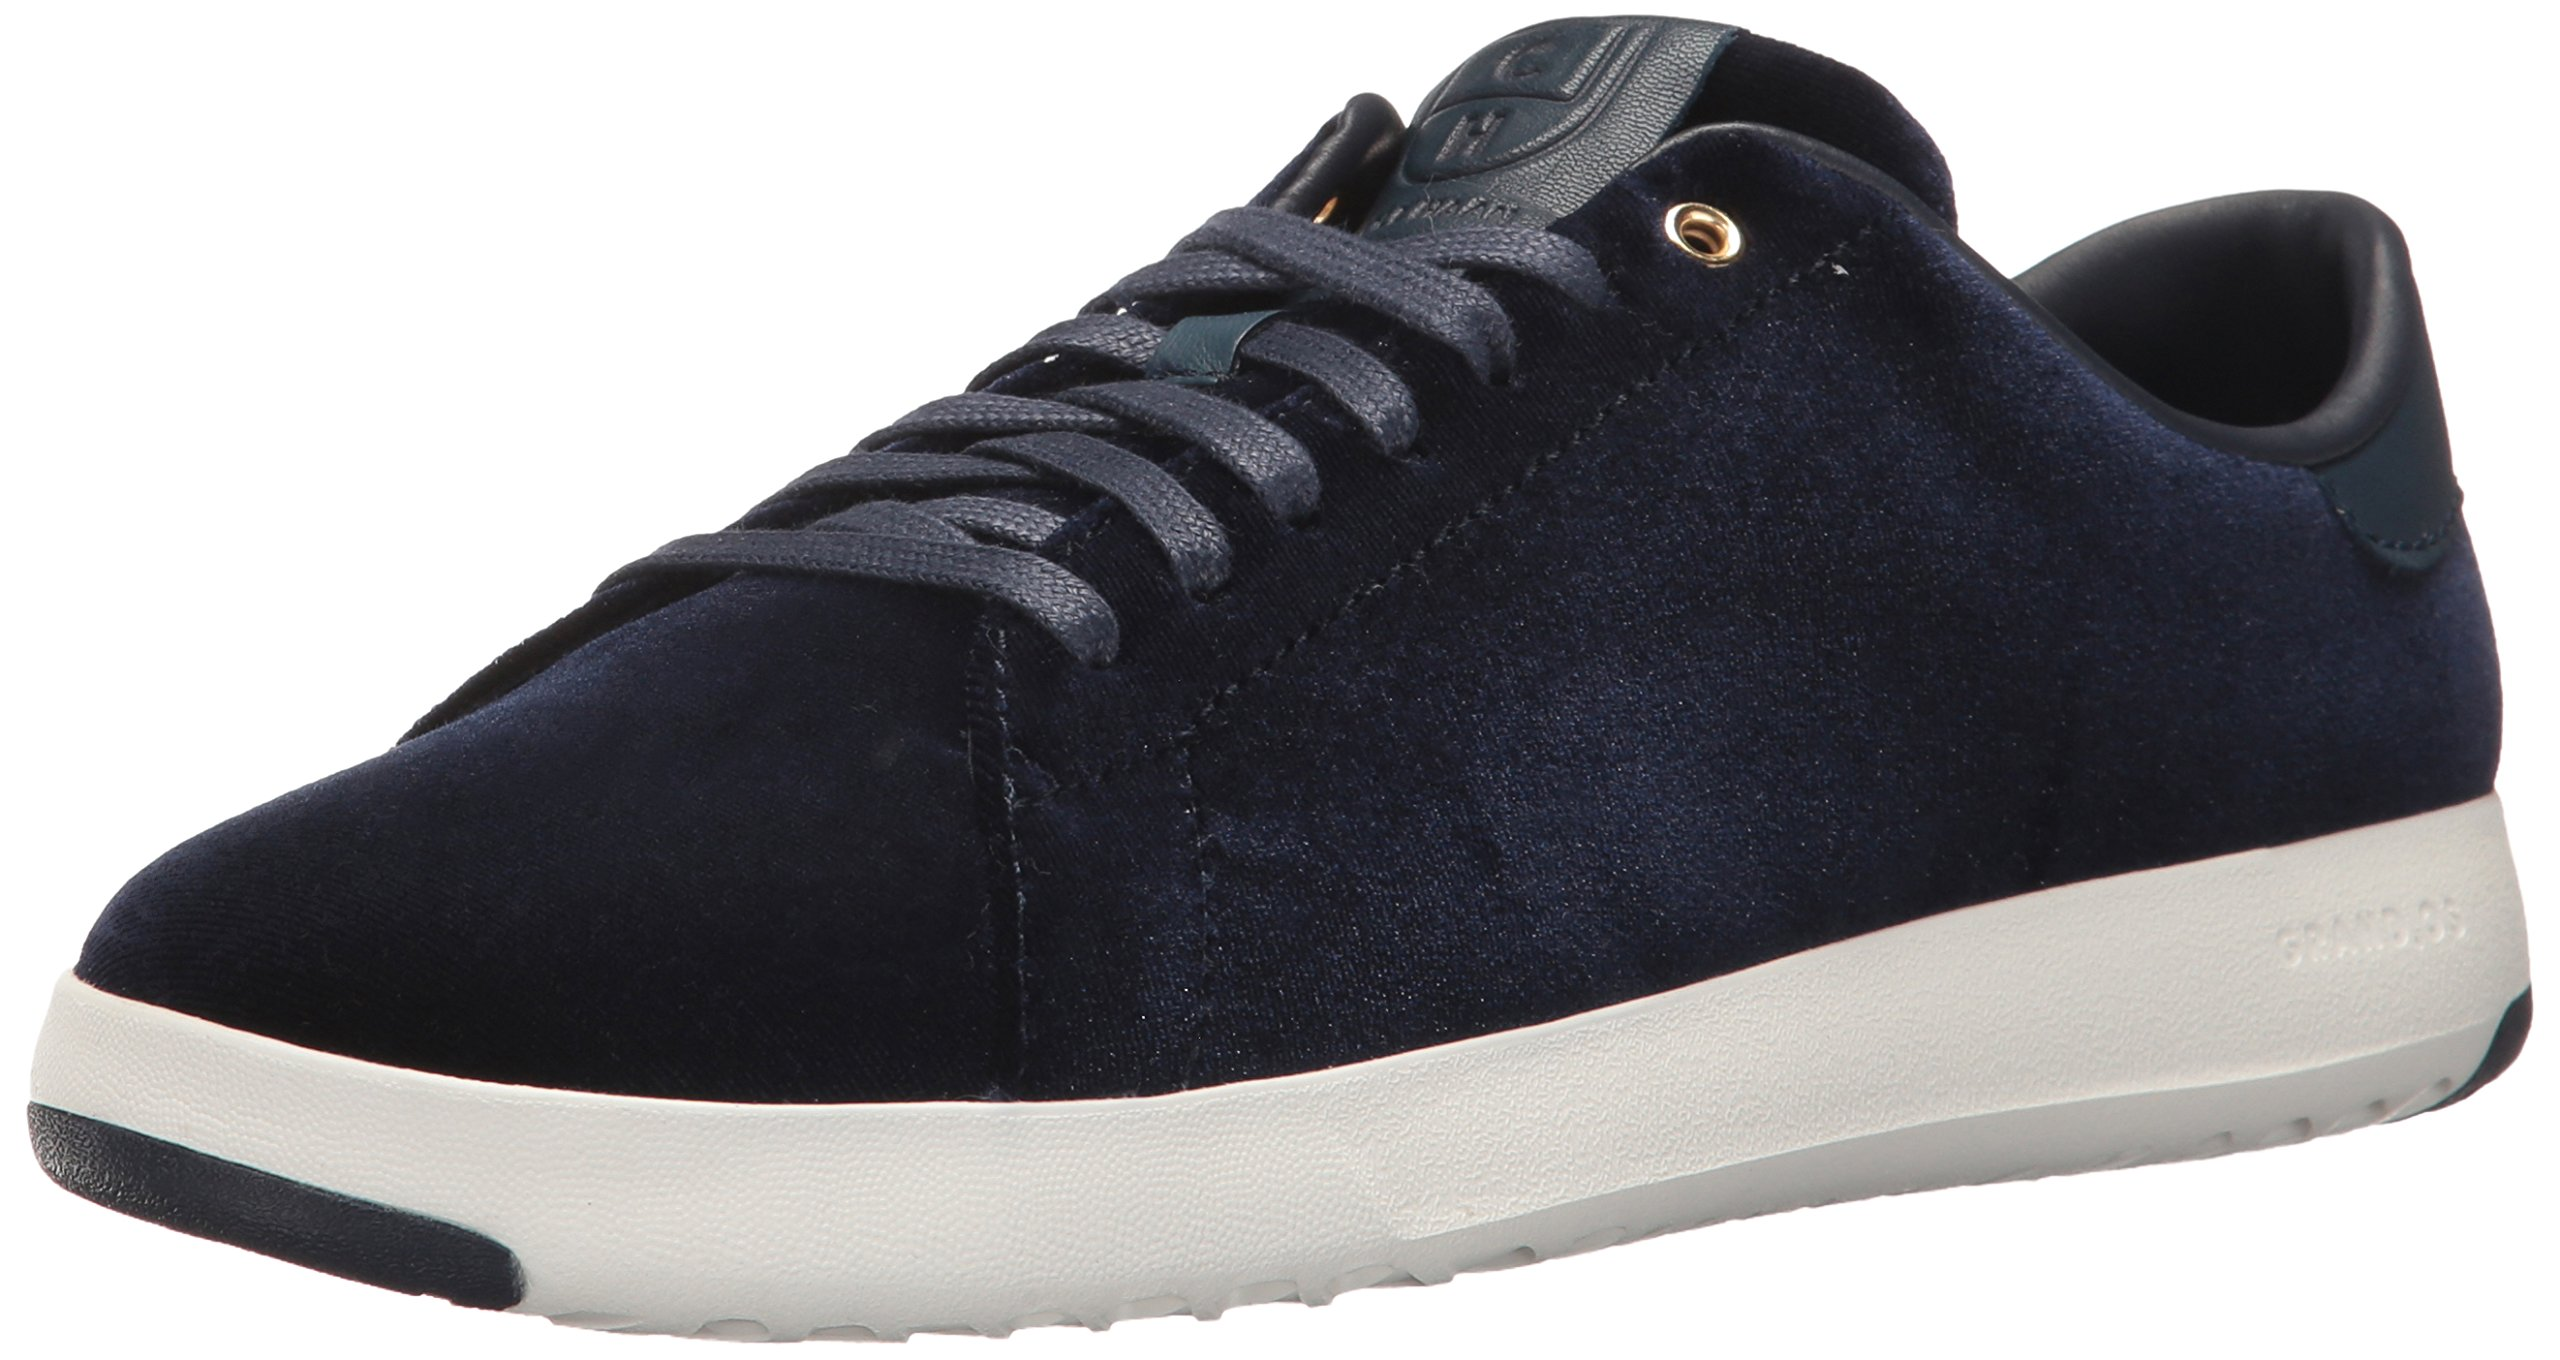 Cole Haan Women's Grandpro Tennis, Marine Blue, 5 B US